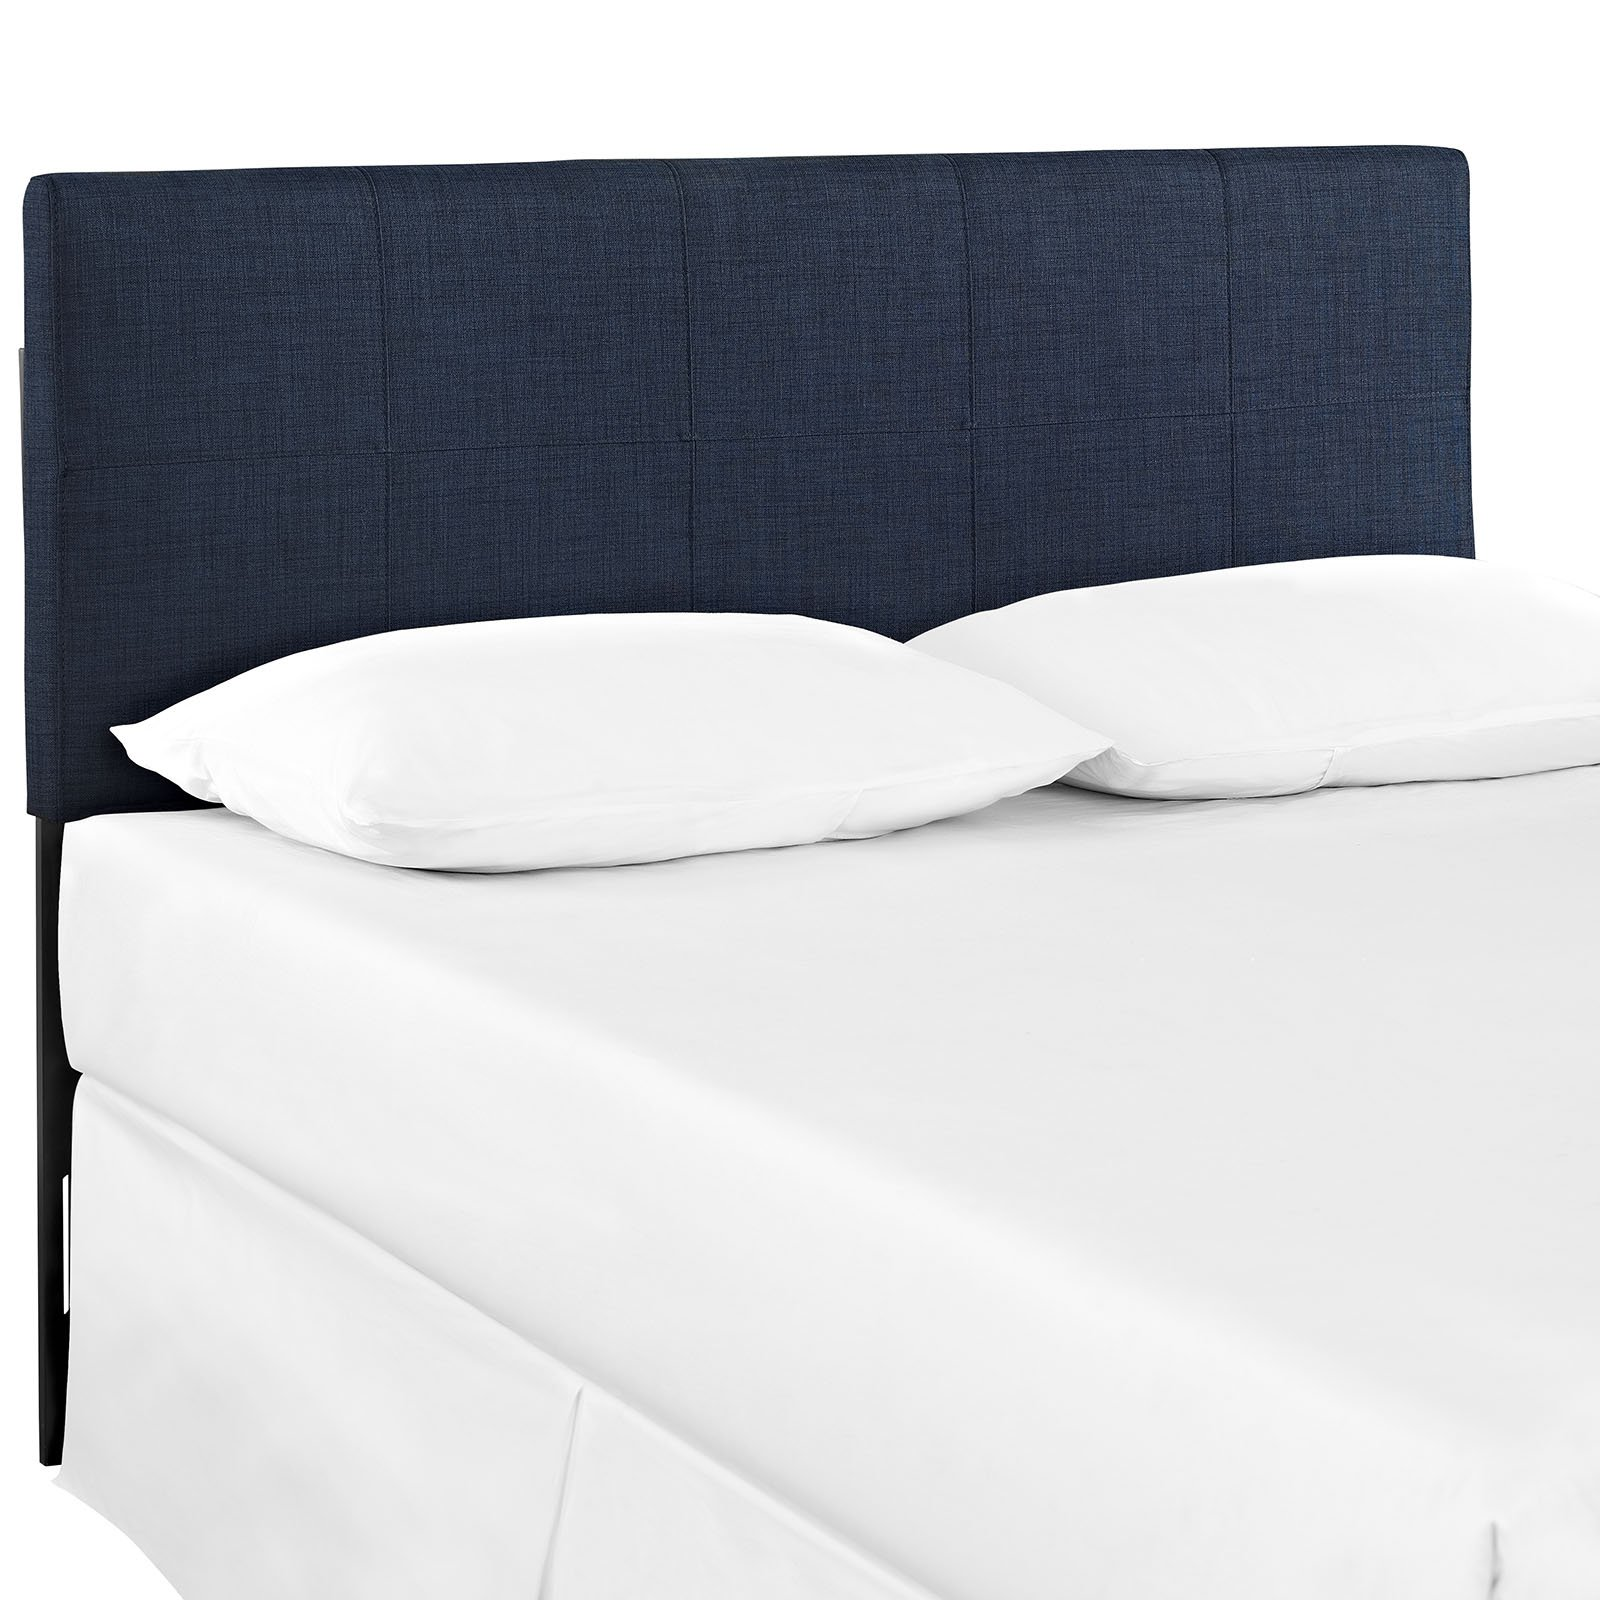 Modway Oliver Linen Fabric Upholstered Queen Headboard in Navy by Modway